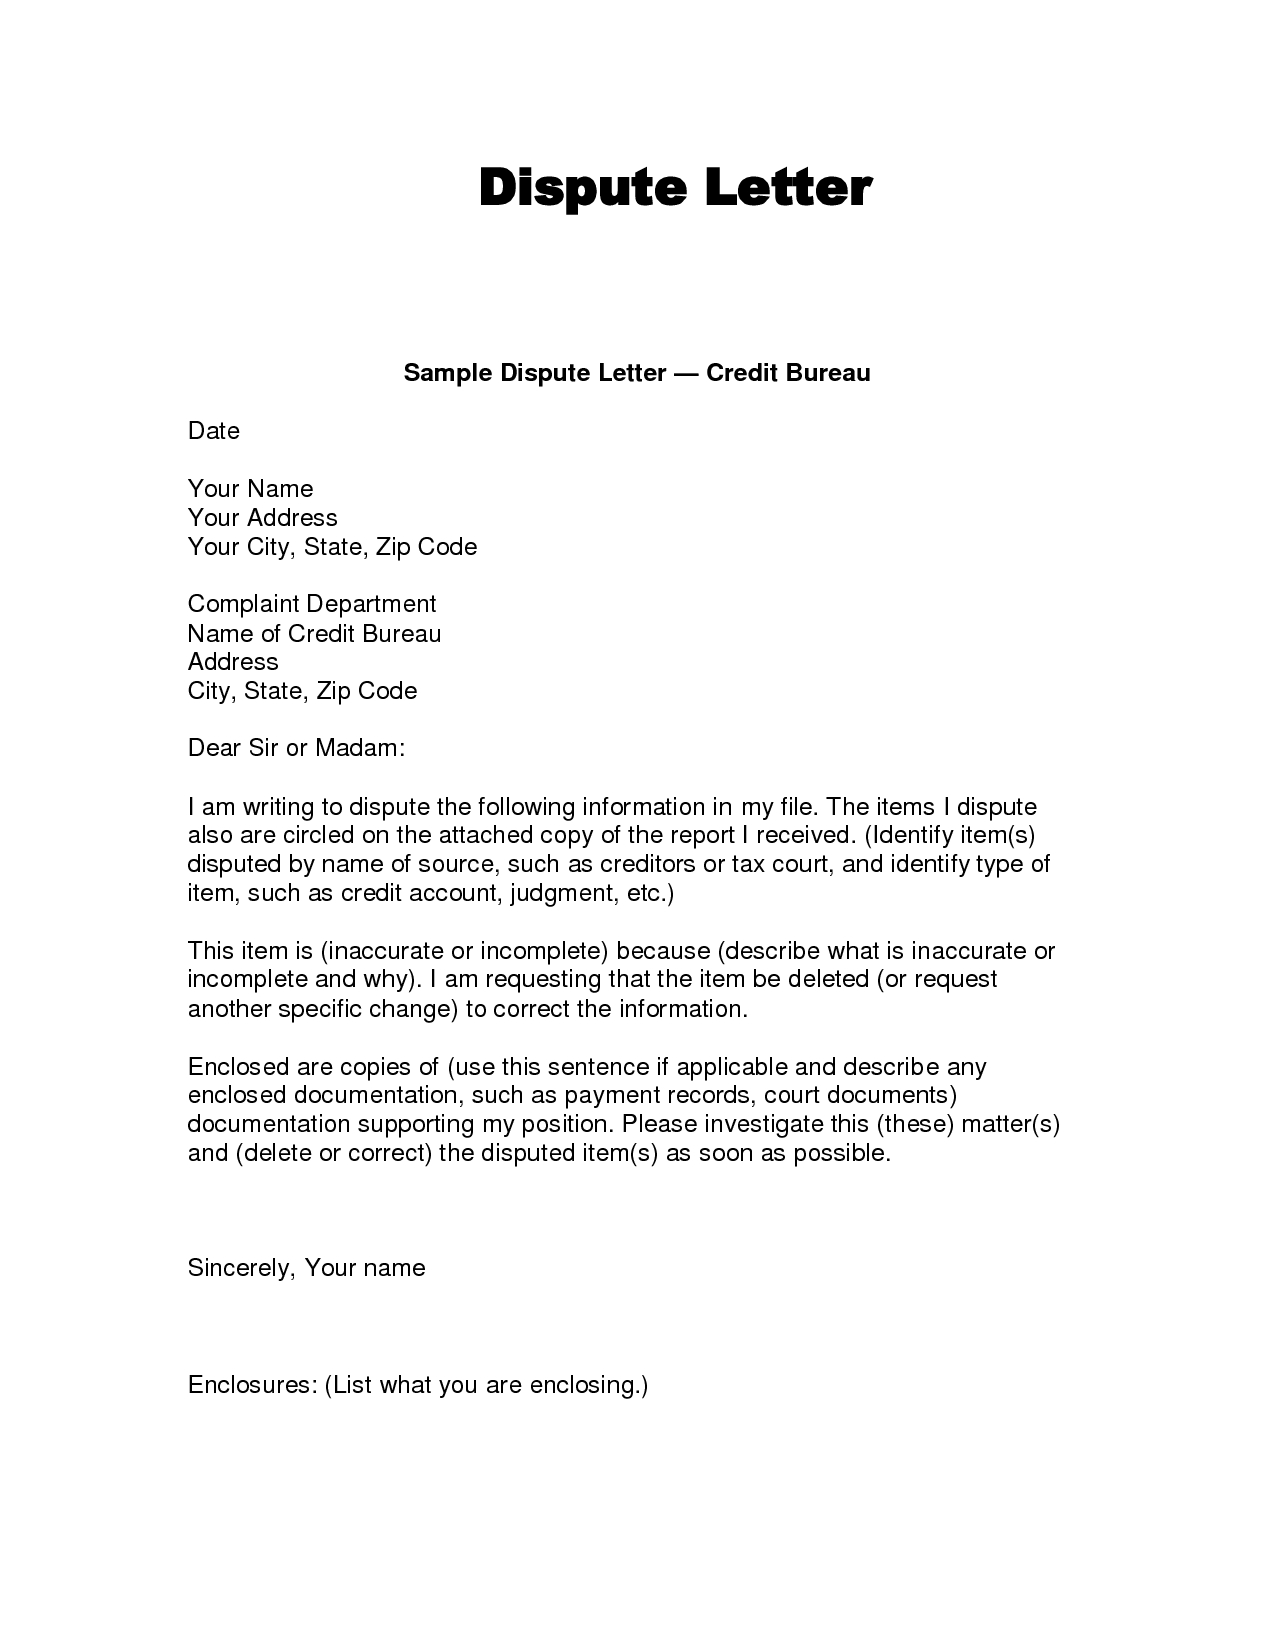 Writing Dispute Letter Format  Make A Habit   Credit Bureaus Within Dispute Letter To Creditor Template